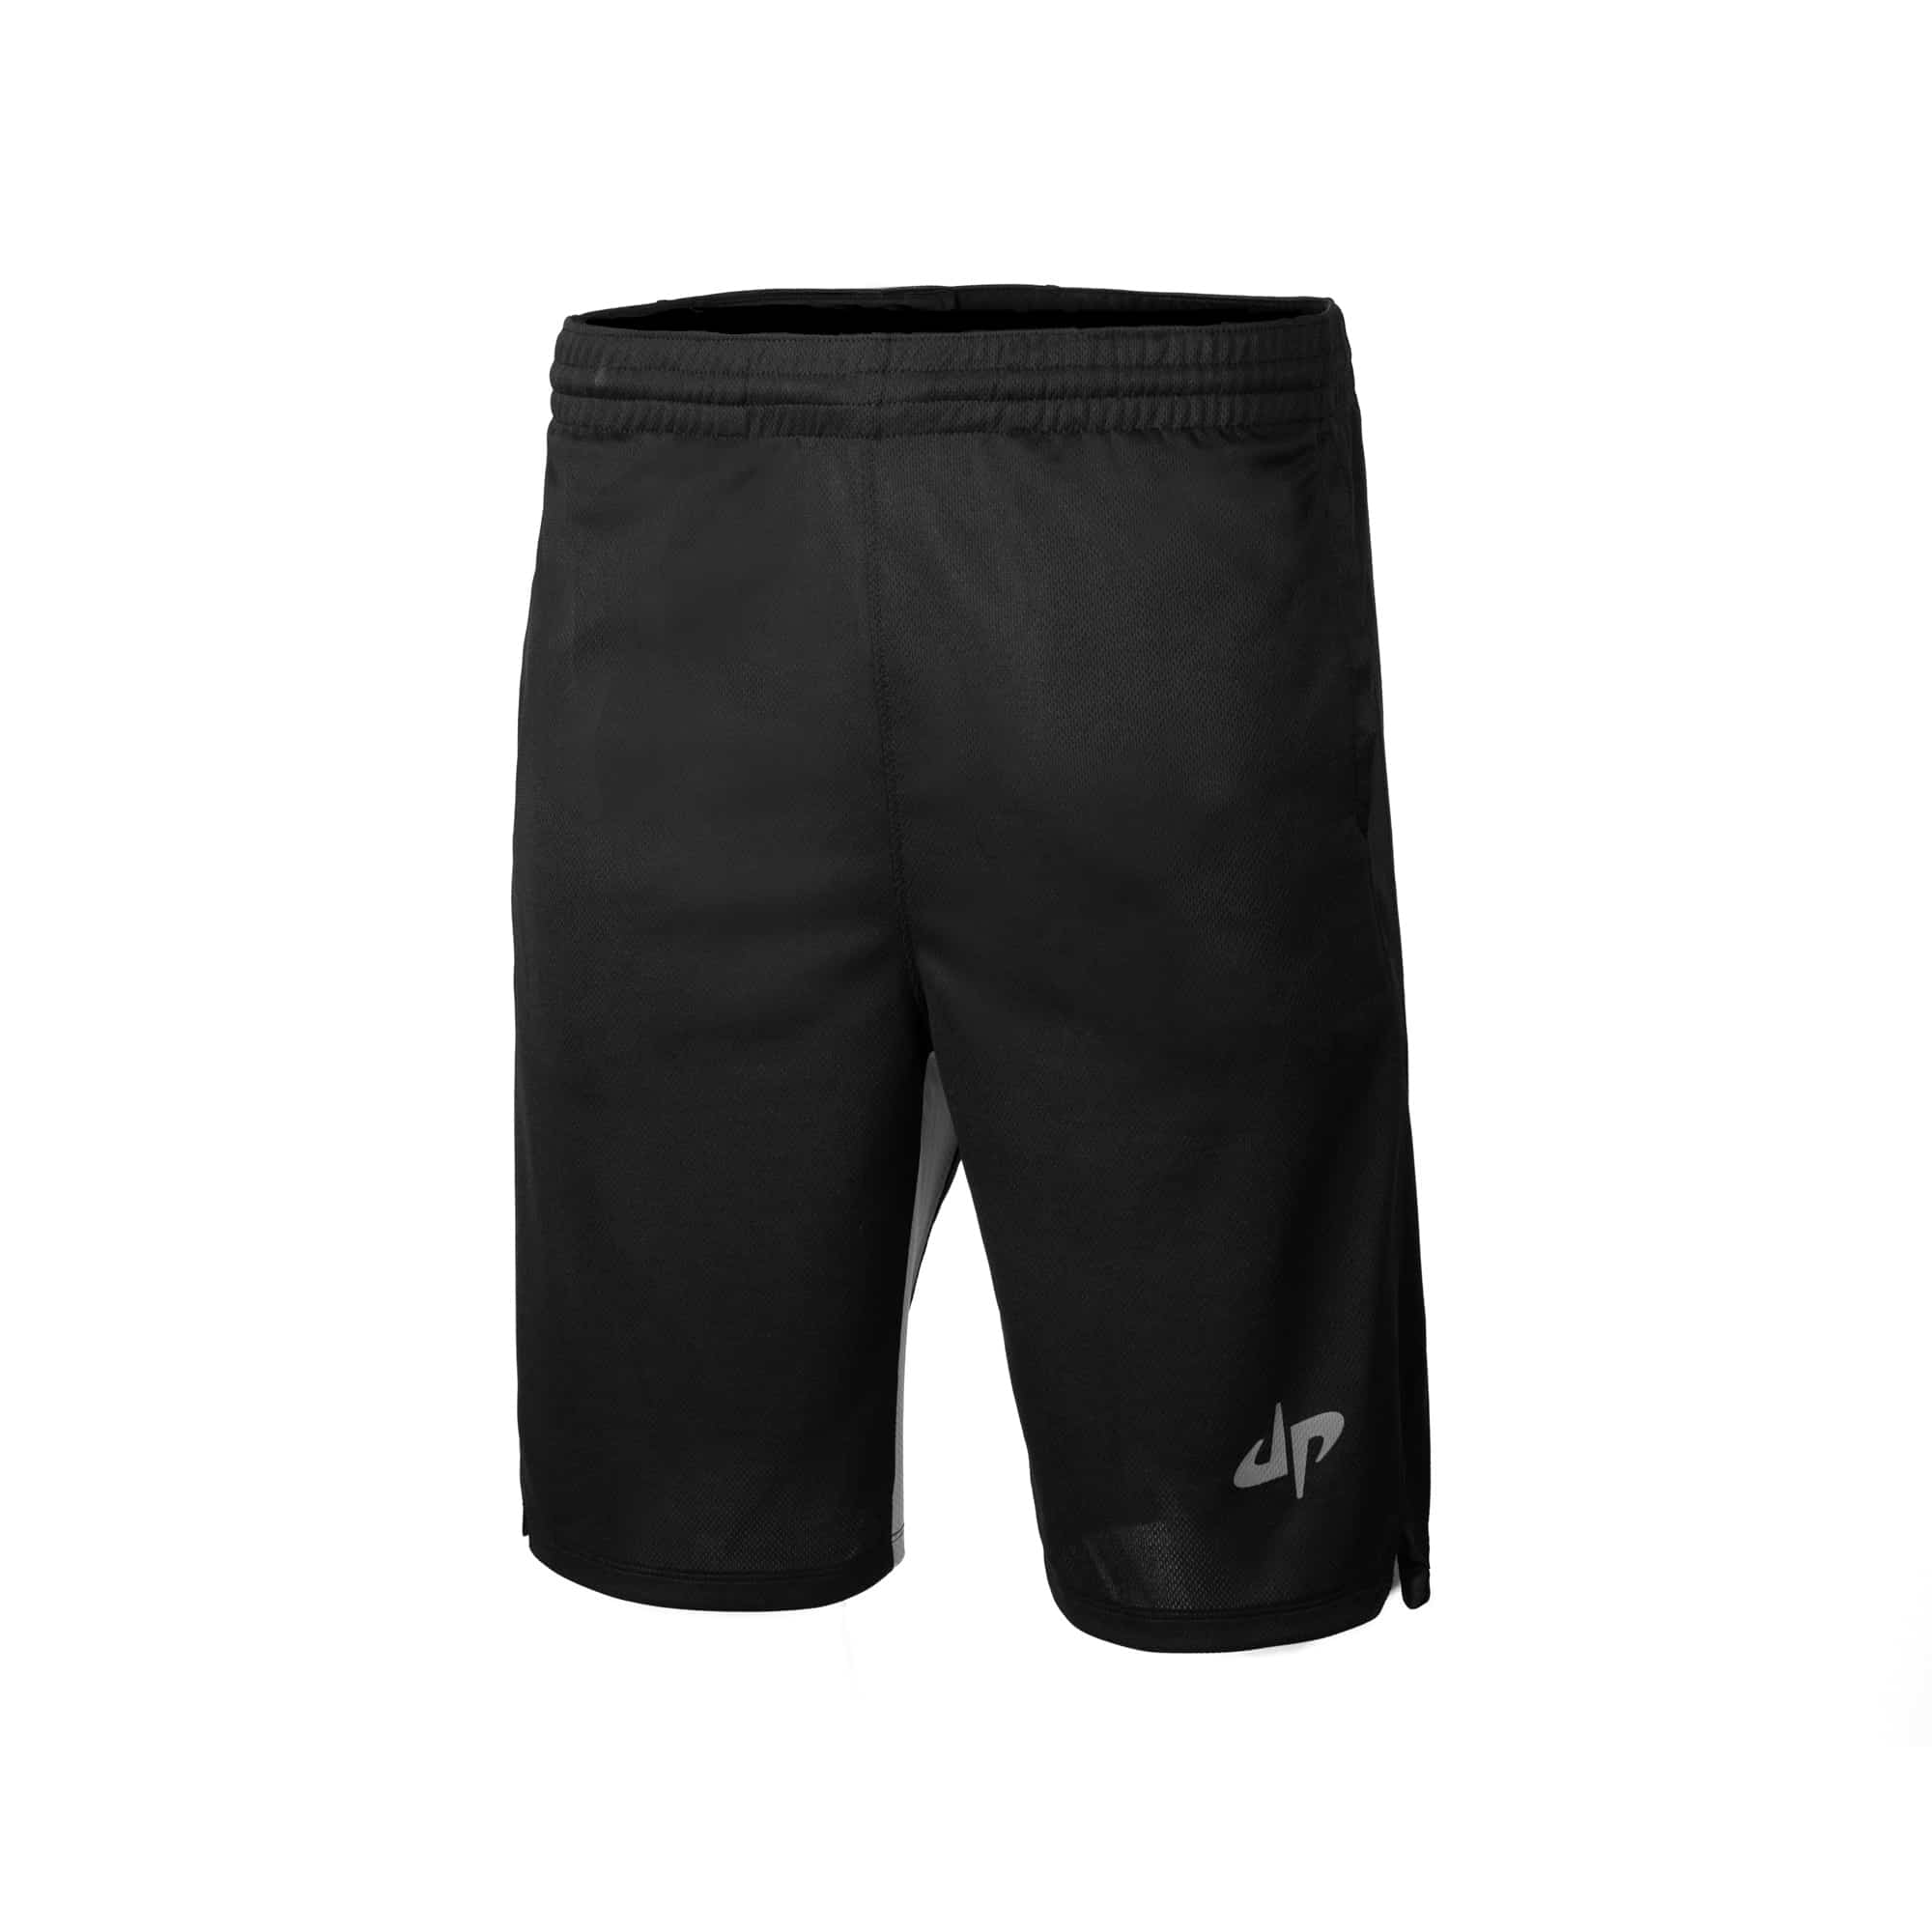 Baller Basketball Short